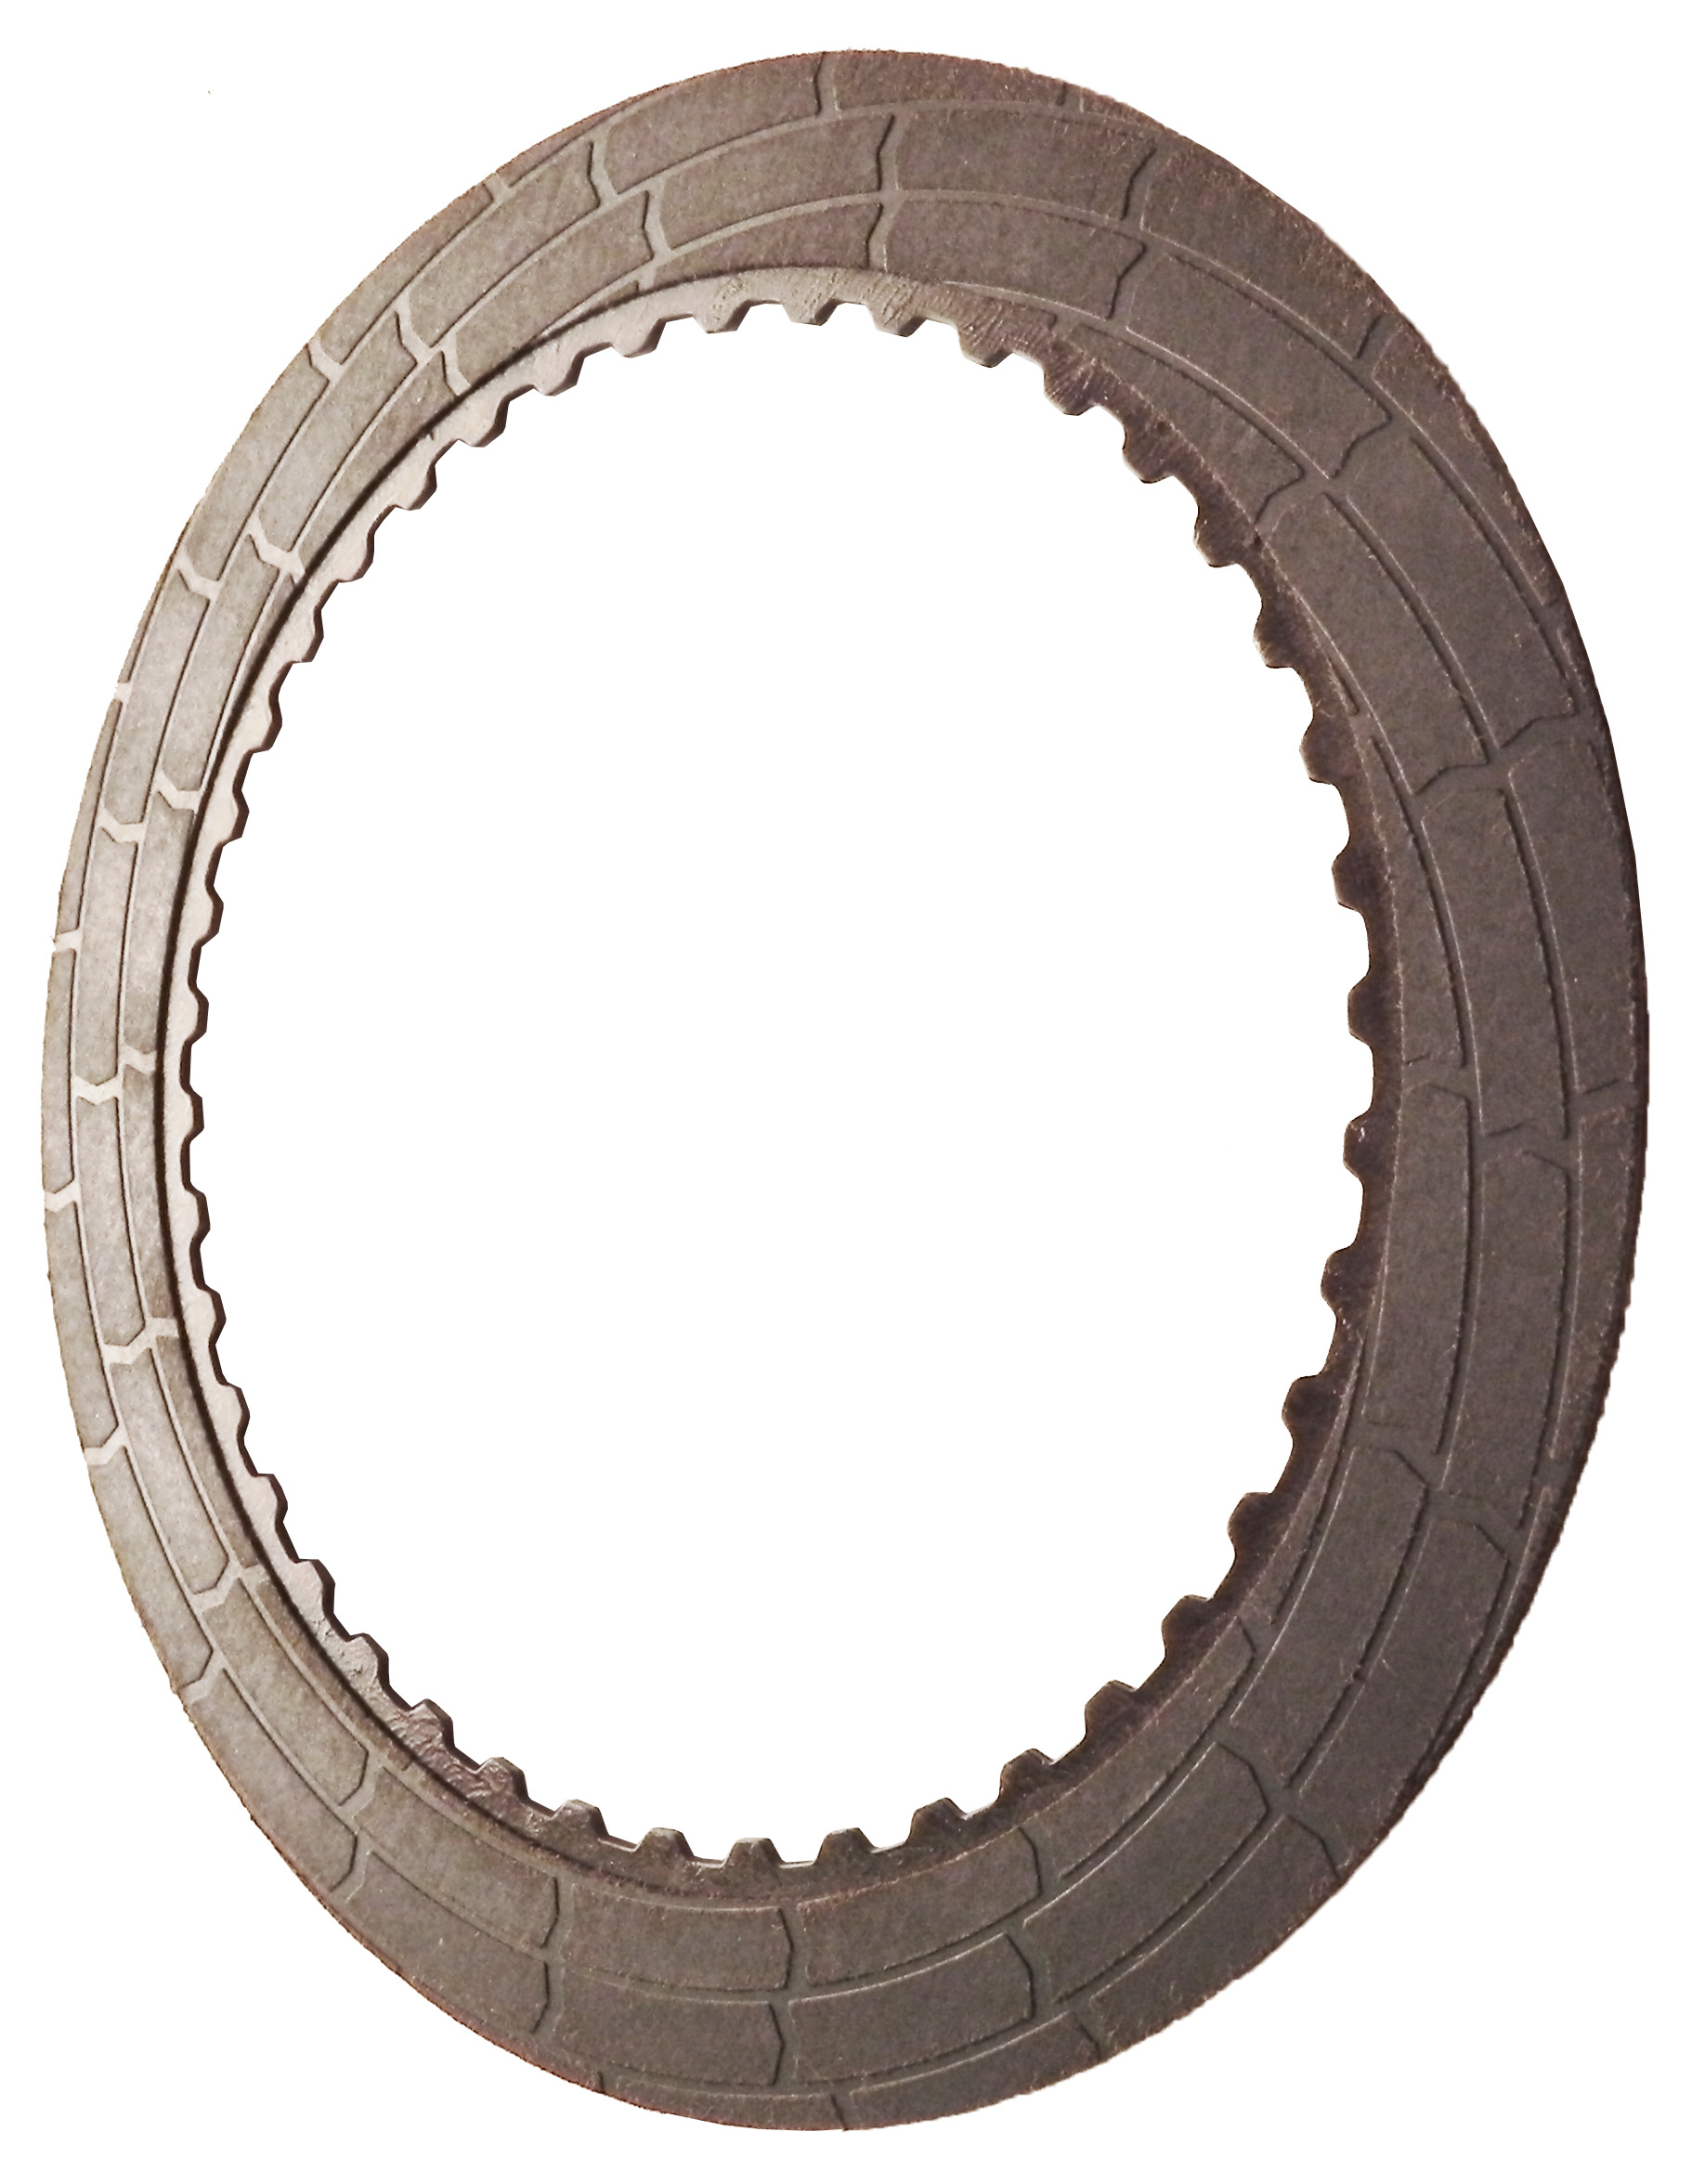 RH560570 | 1994-ON Friction Clutch Plate (HT) Hybrid Technology Direct Clutch Proprietary High Energy (HT)